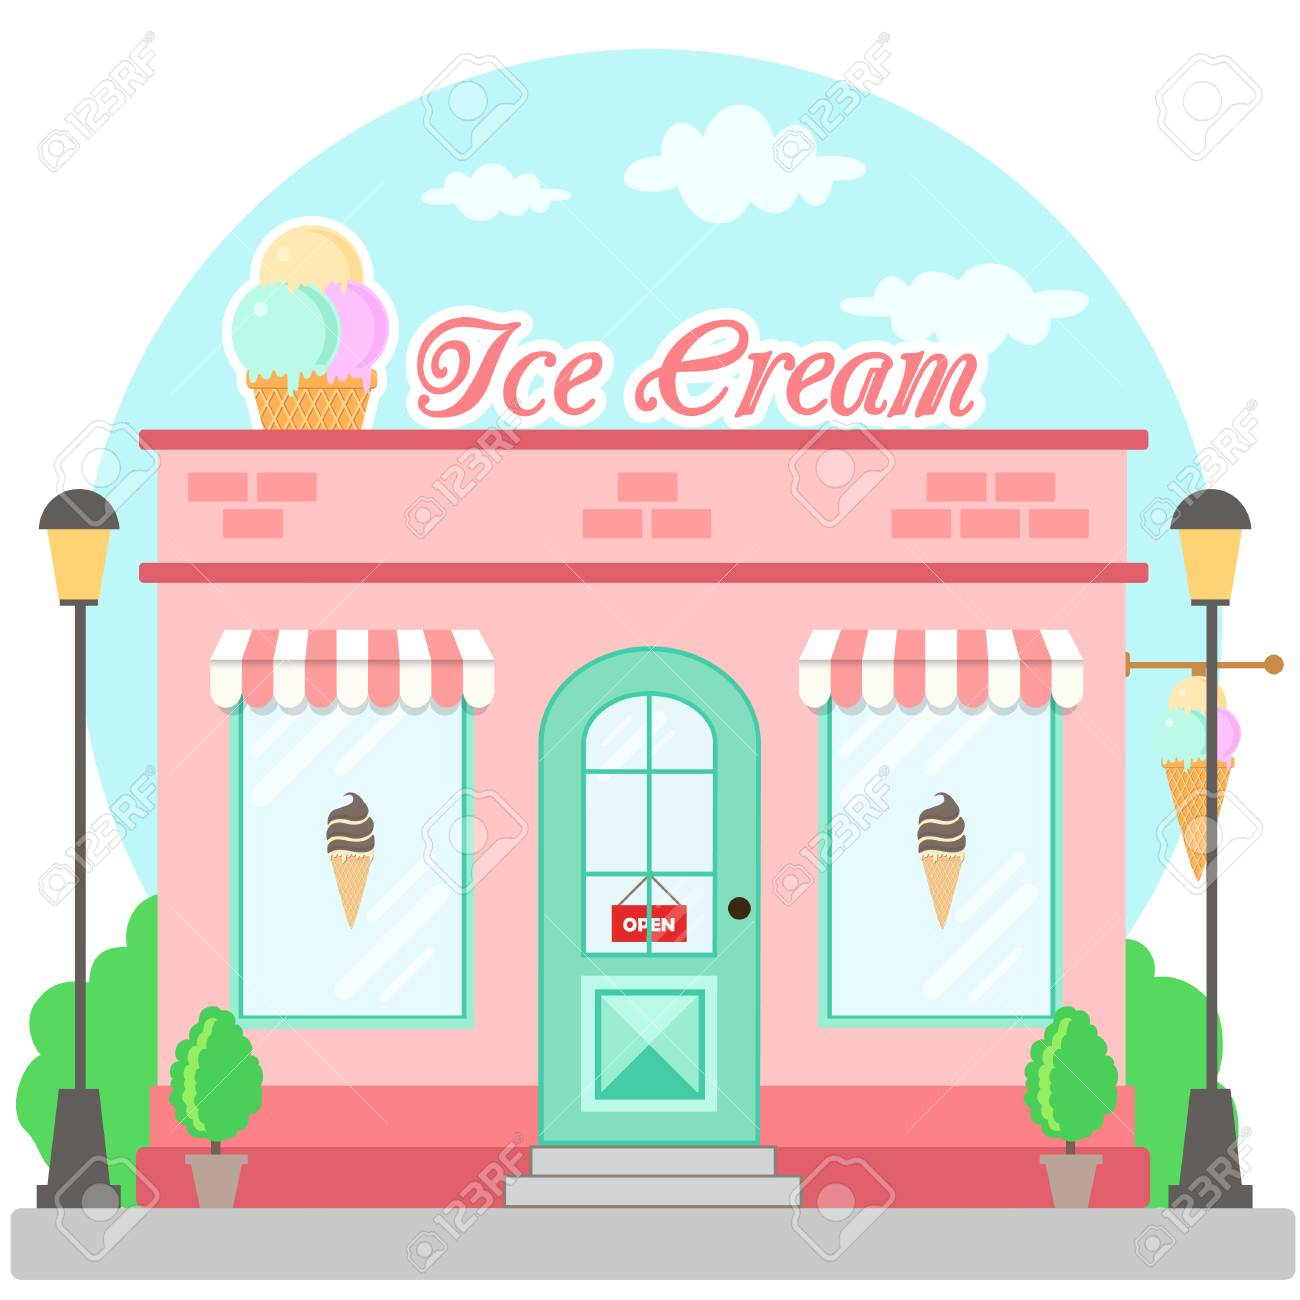 Facade ice cream shop with a signboard, awning and symbol in...